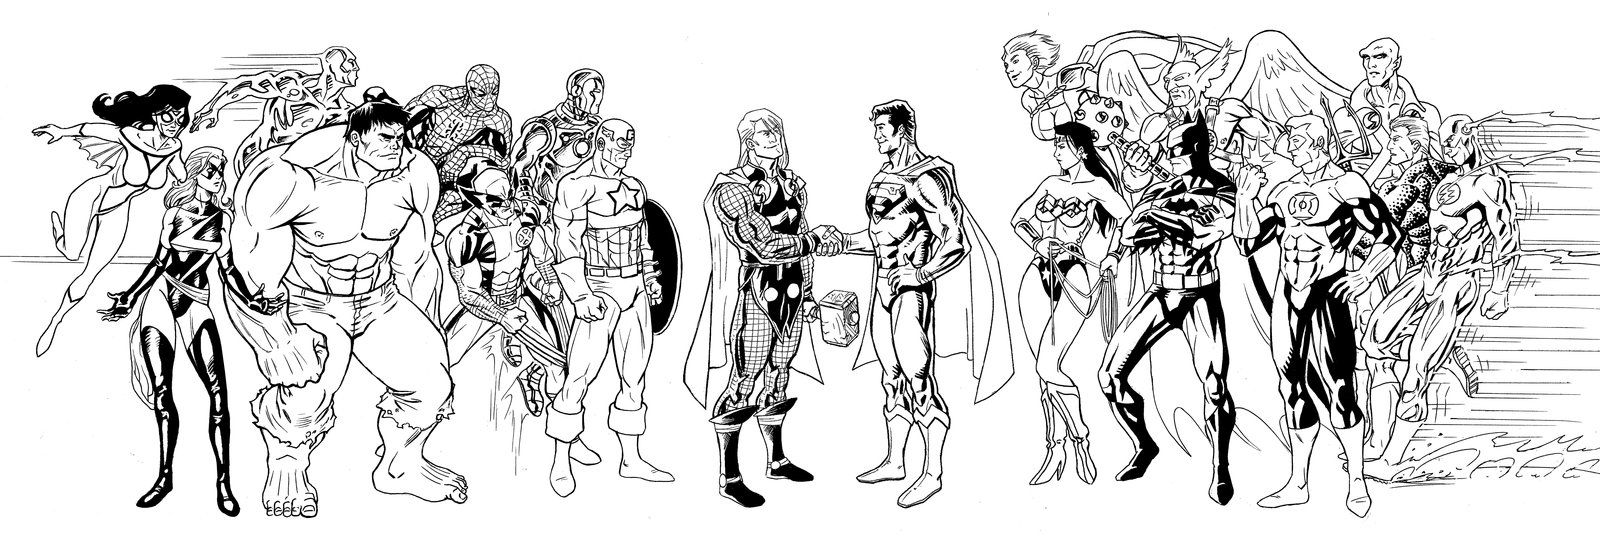 Justice League - Avengers by Ericdimension.deviantart.com on ...